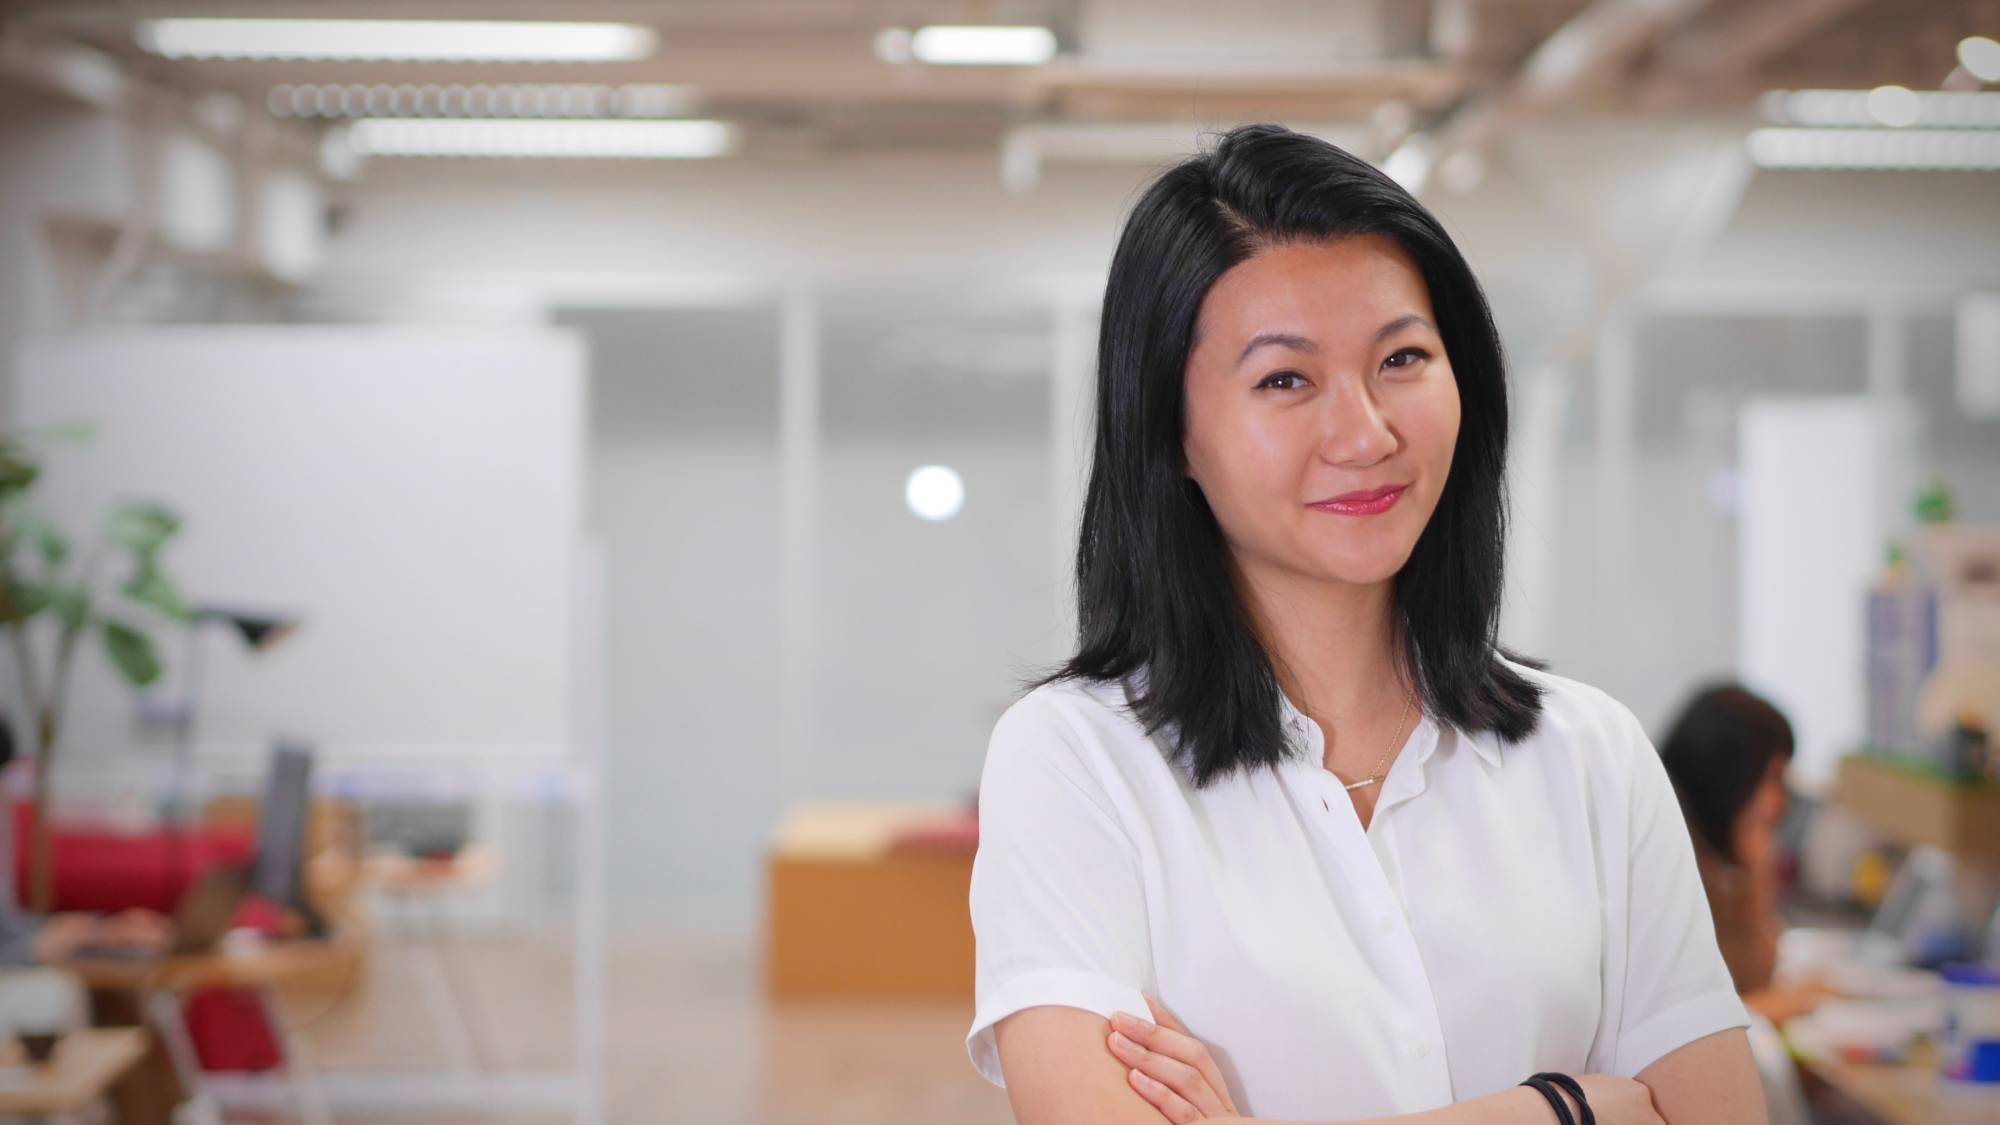 It's about visibility: Yan Fan says that there needs to be an effort to get more women on panels so that those who work in male-dominated industries will start to see women as the capable professionals they are. |